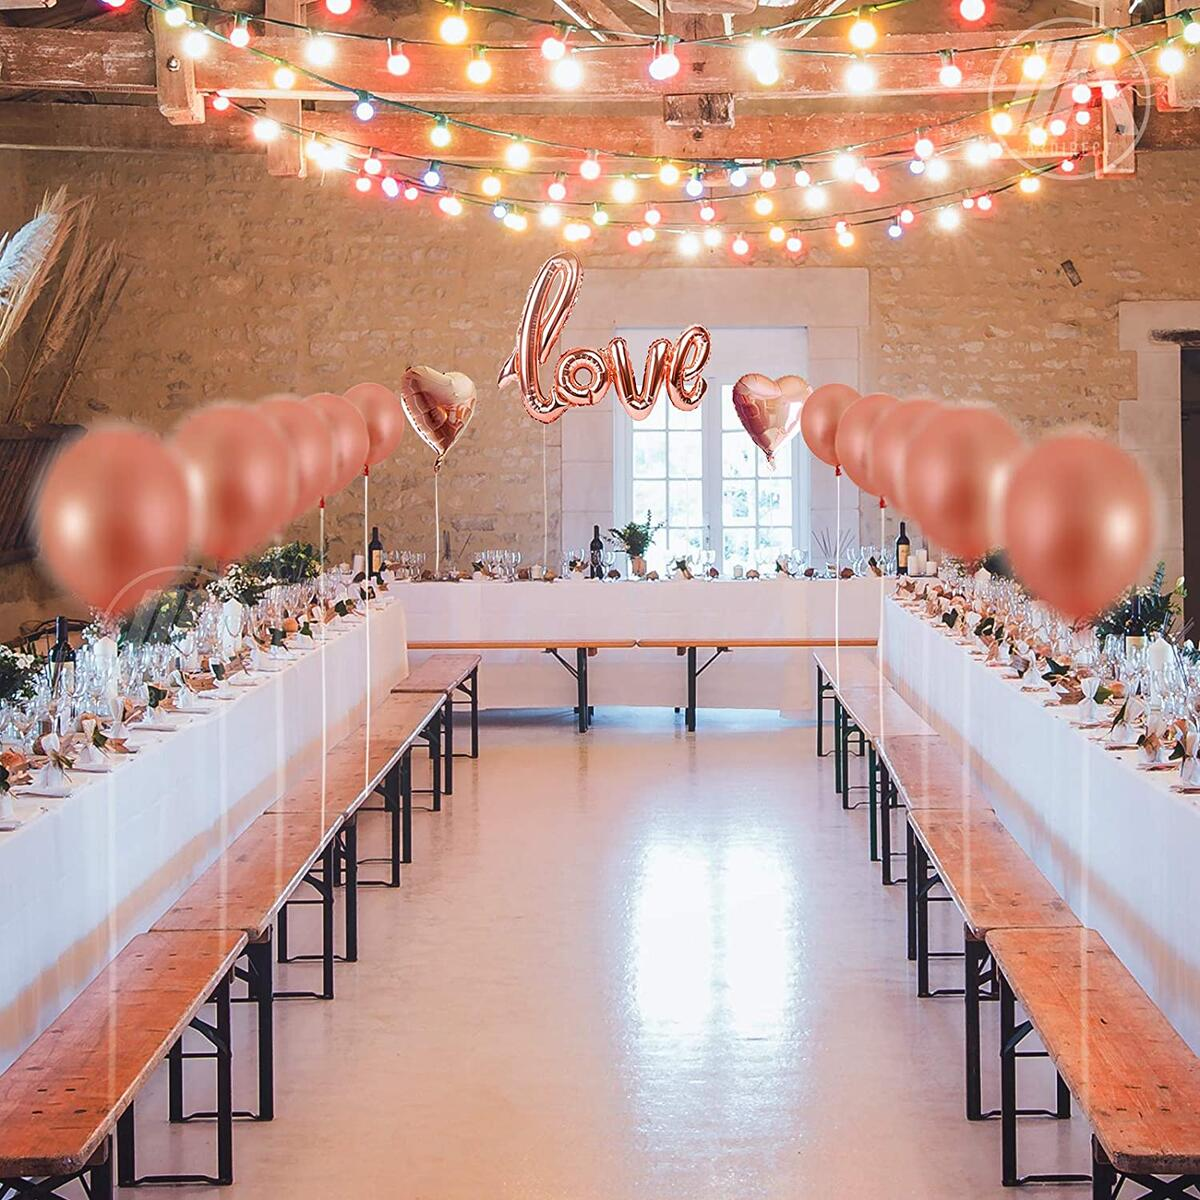 Bachelorette Party Decorations Rose Gold Love Balloons Set - Perfect for Bridal Shower, Wedding Decor and Engagement Parties Supplies - Large 32 Inch Mylar Letter Balloons Photo Booth Props